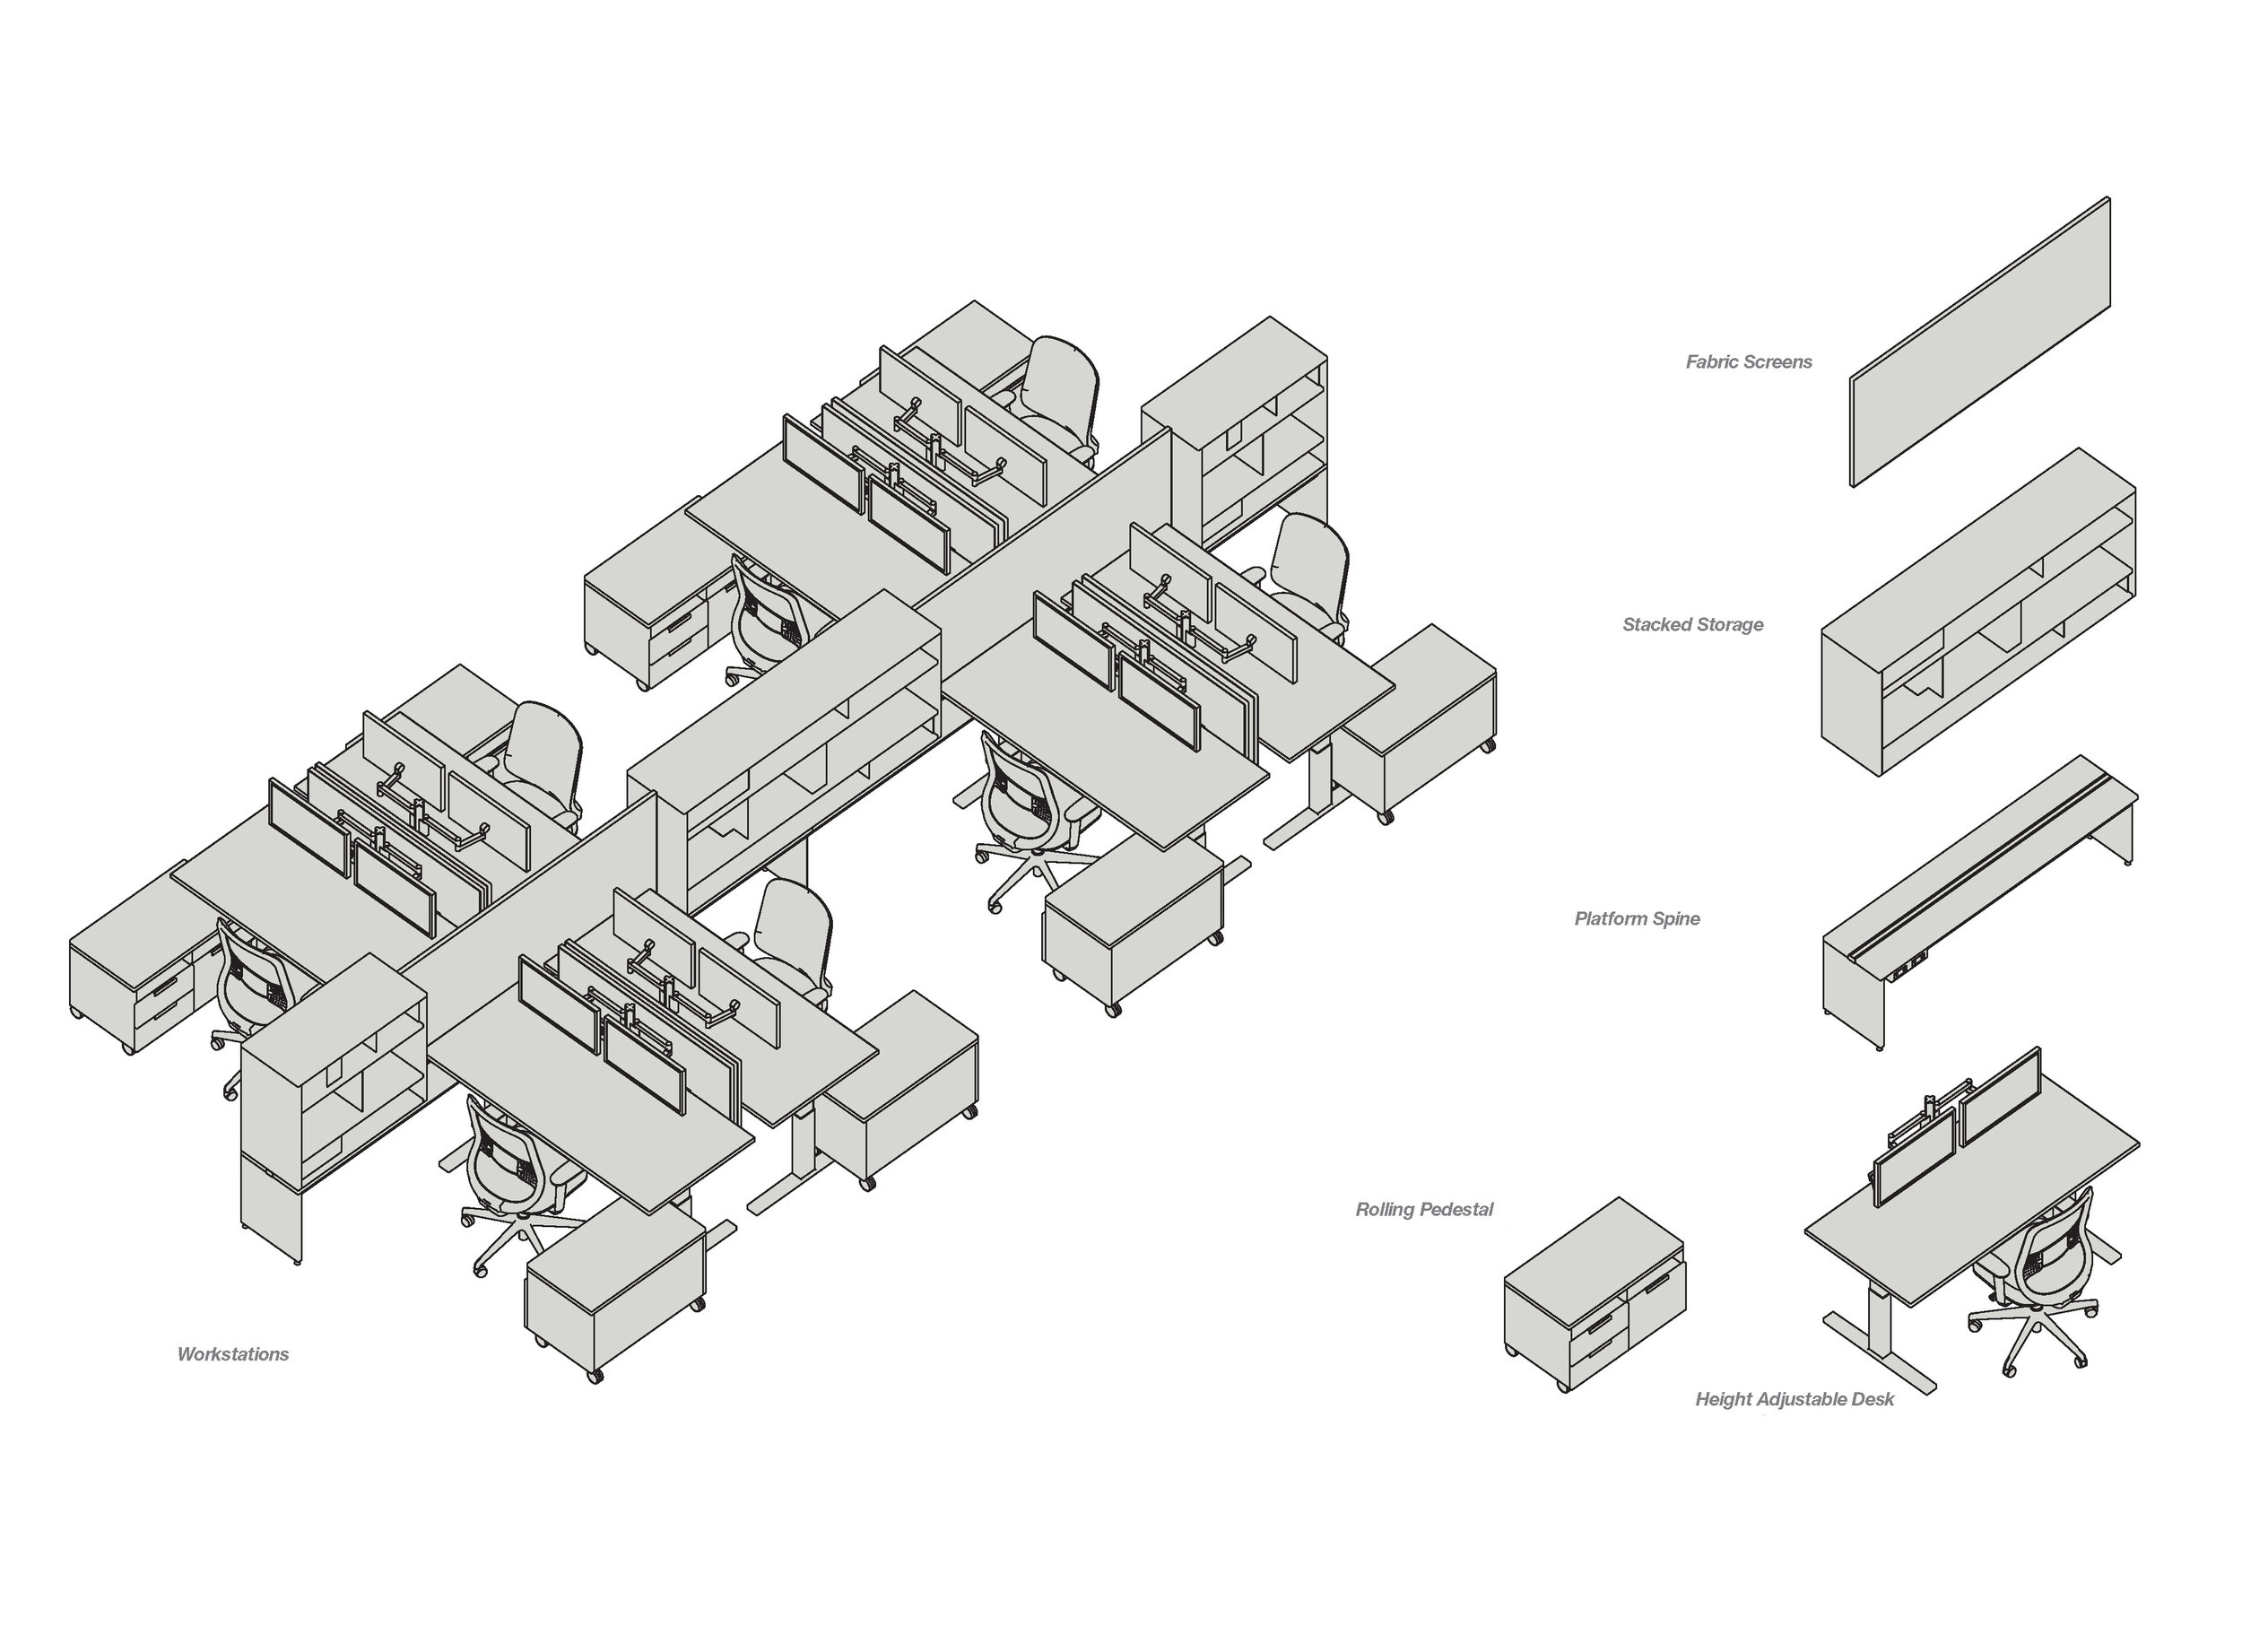 A schematic illustration of upStage for a client.